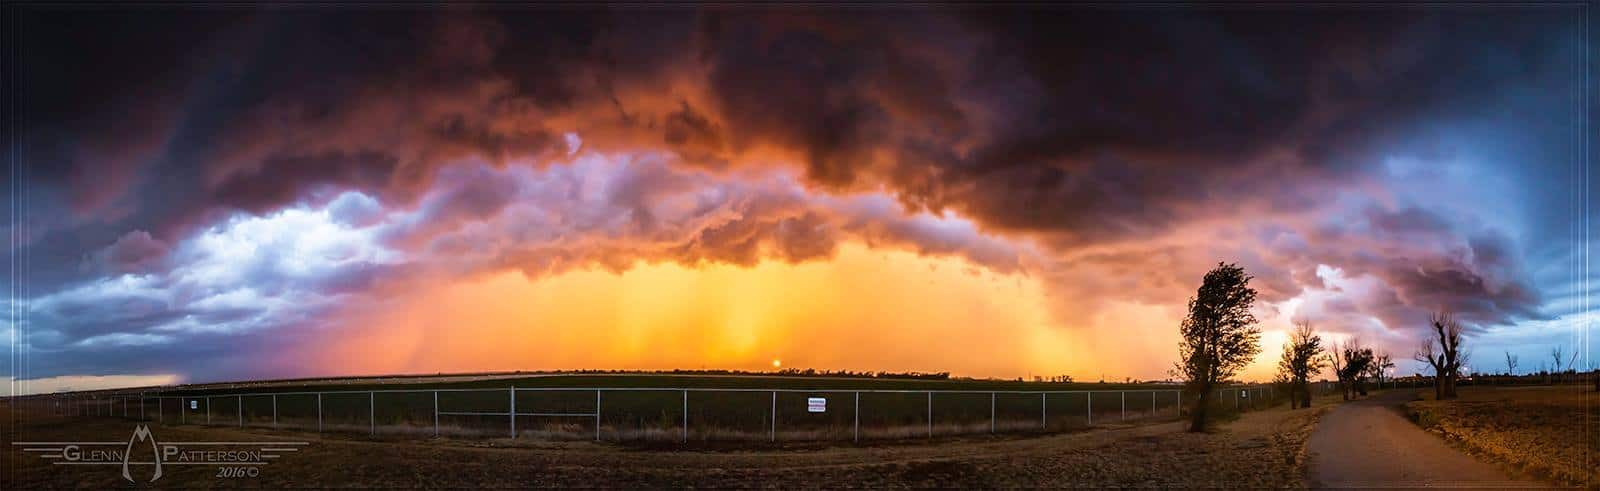 Here's a Oldie but a Goodie. Hands Down one of the Most Beautiful Stormy Sunsets I've Ever taken. Its a 13 Shot Panorama taken on August 25th 2012 several miles North of Altus Oklahoma. Enjoy